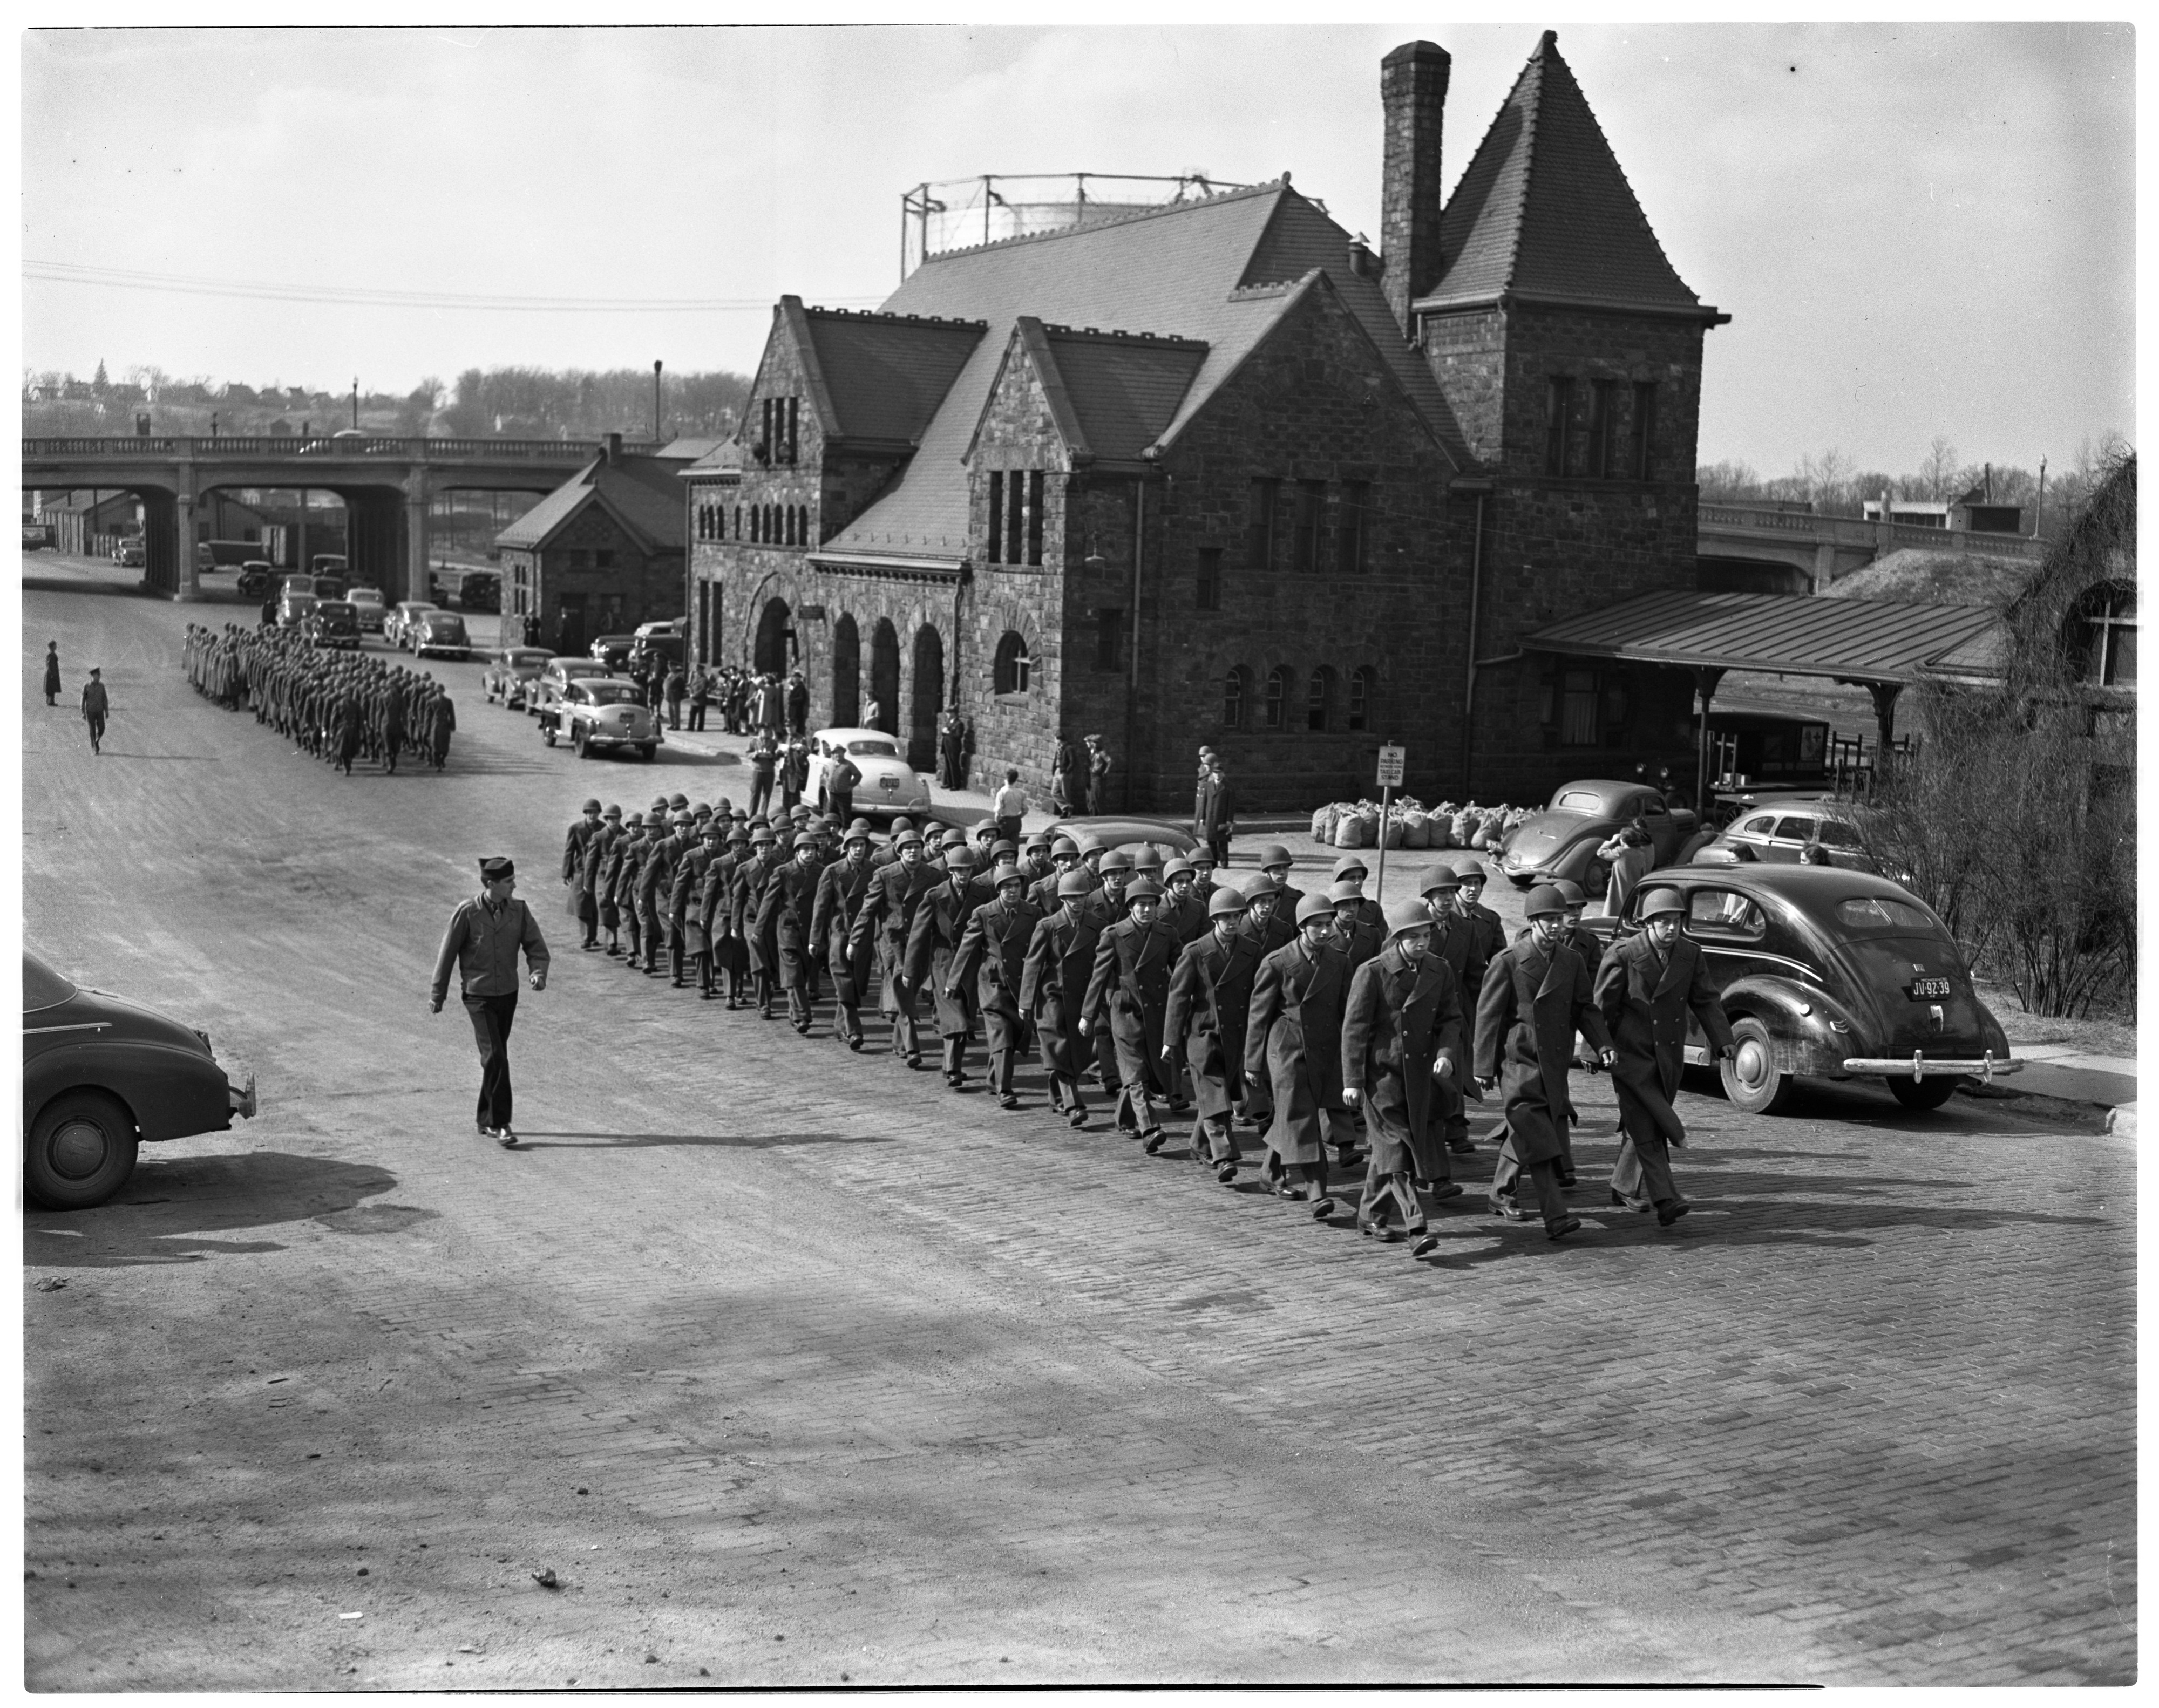 ROTC Returns as Inducted Soldiers, March 1943 image